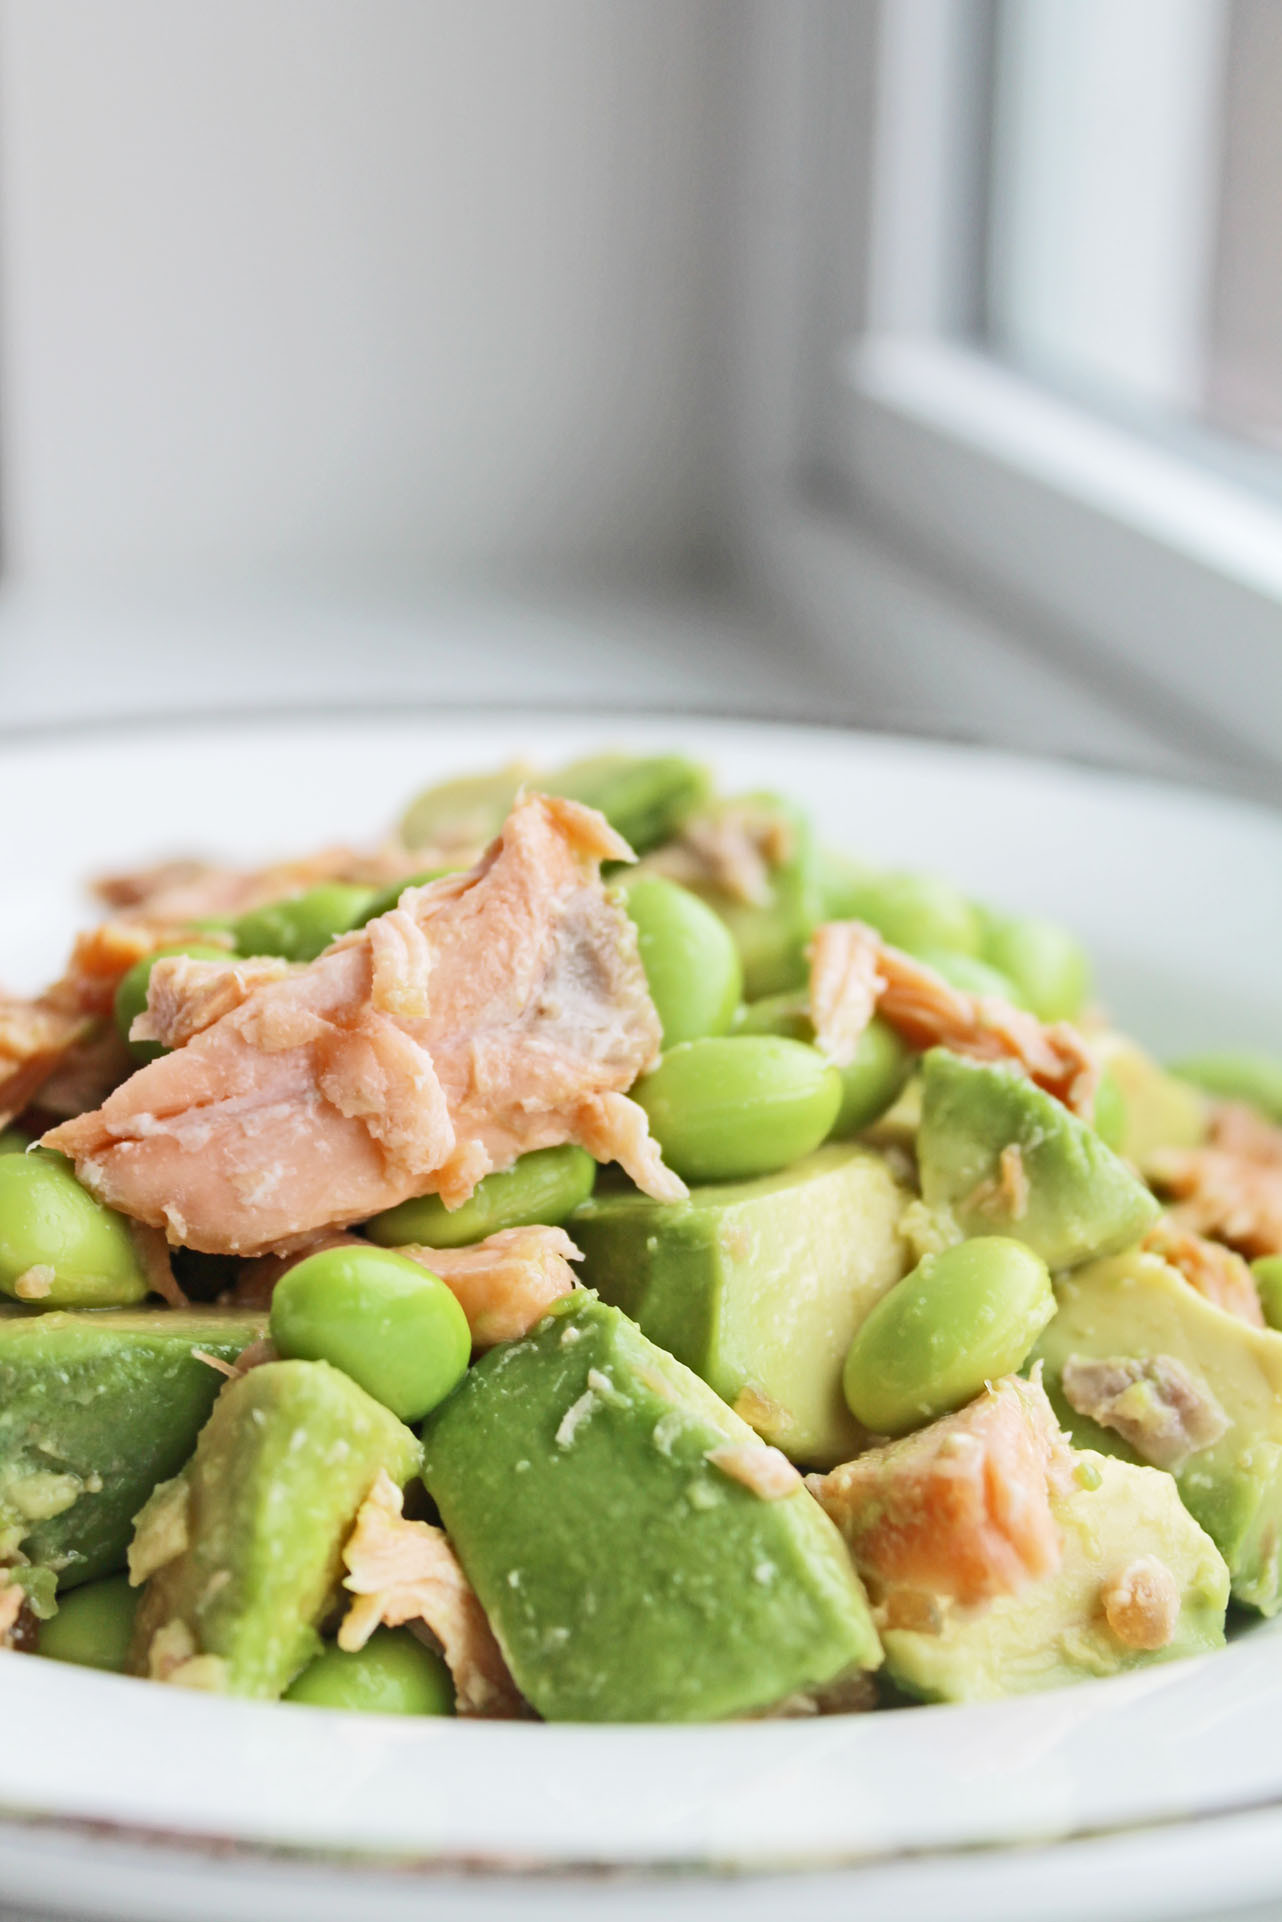 Healthy Clean Dinners  Healthy Dinner Option Salmon Avocado Bowl